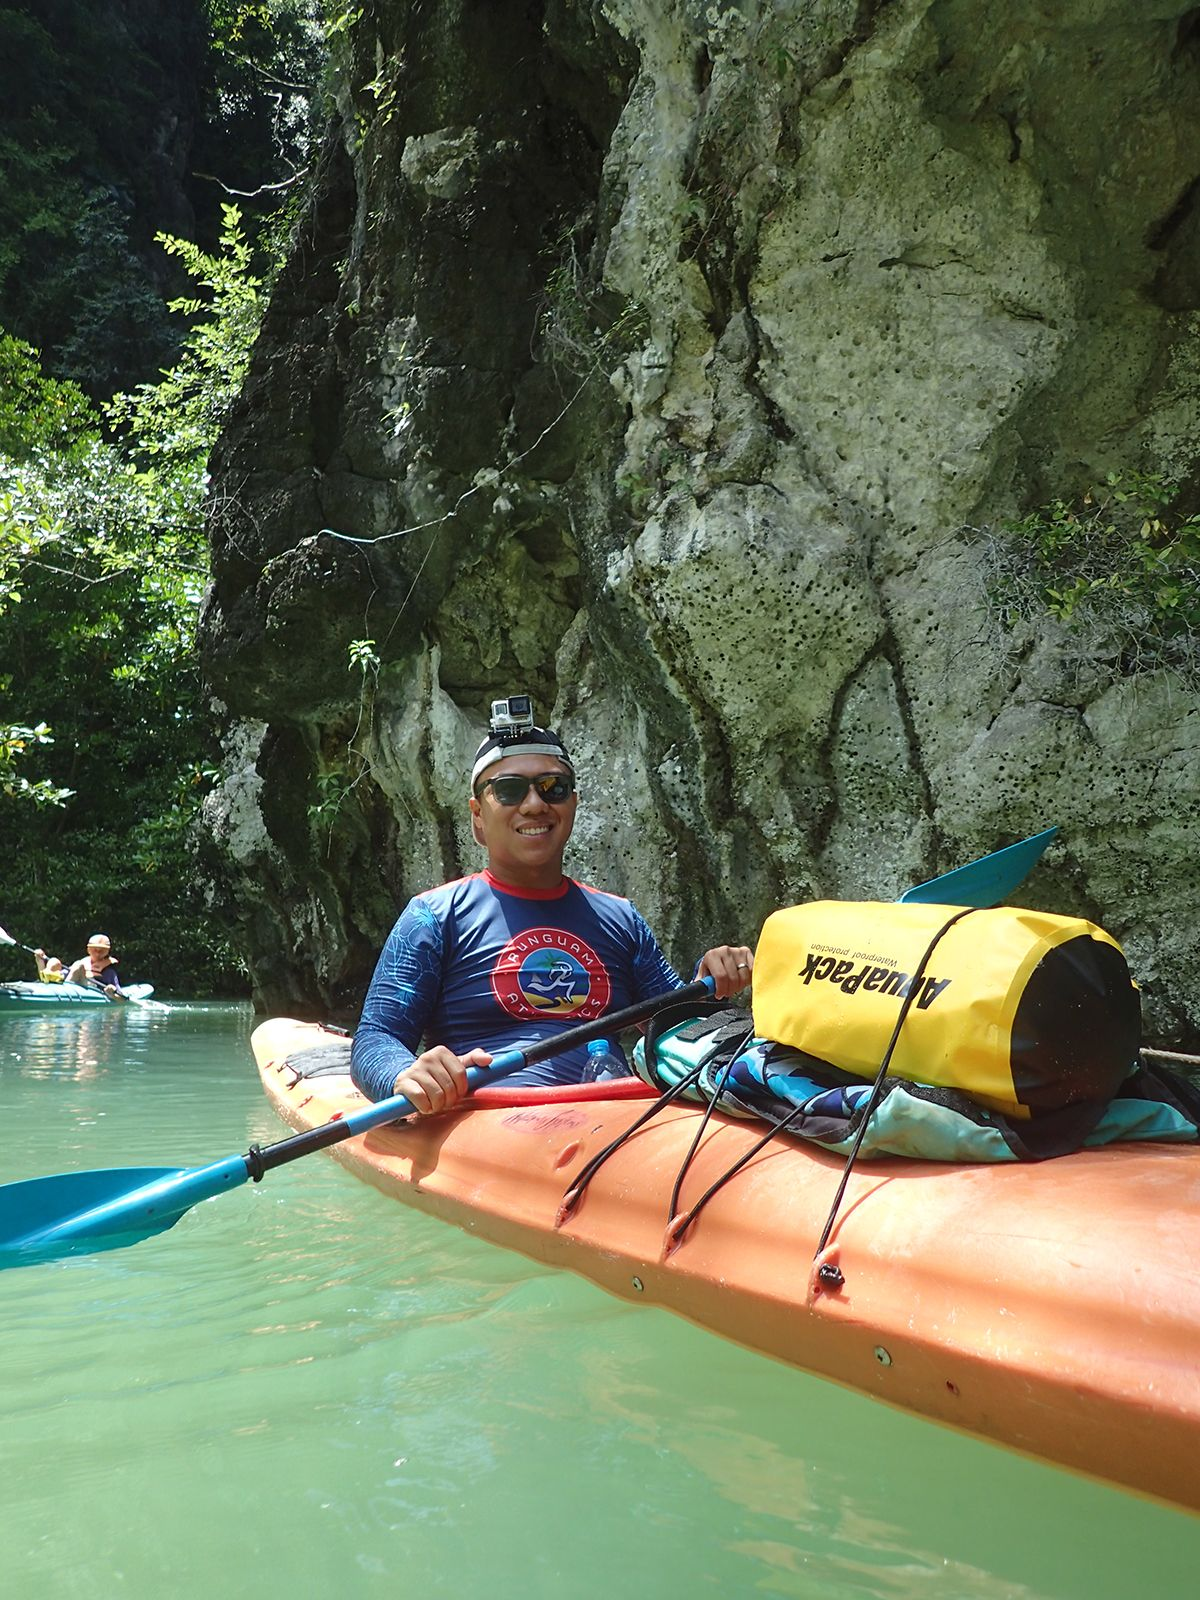 Calaor kayaking